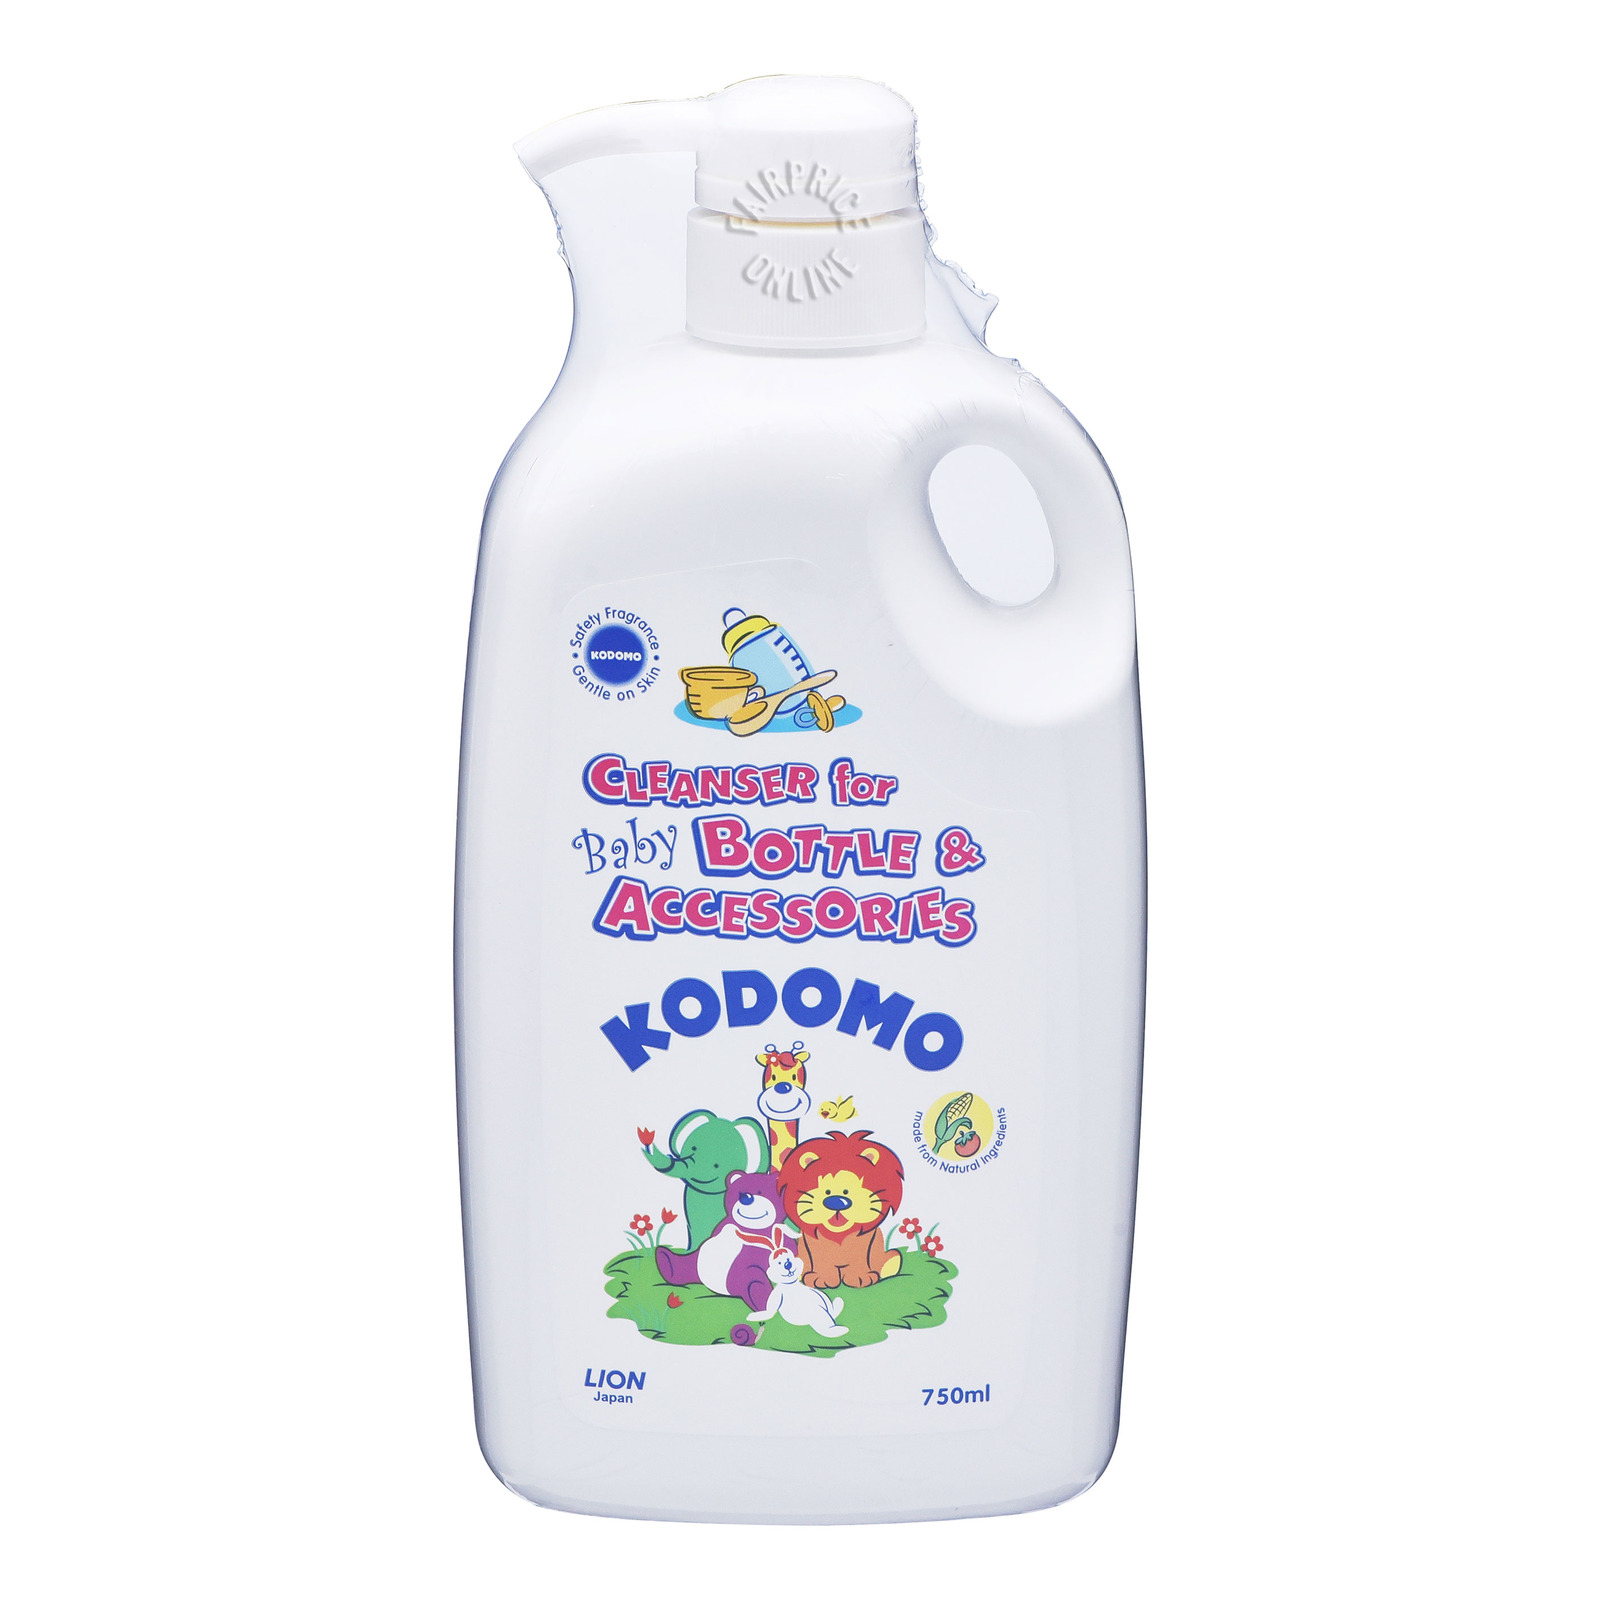 Kodomo Baby Cleanser - Bottle & Accessories